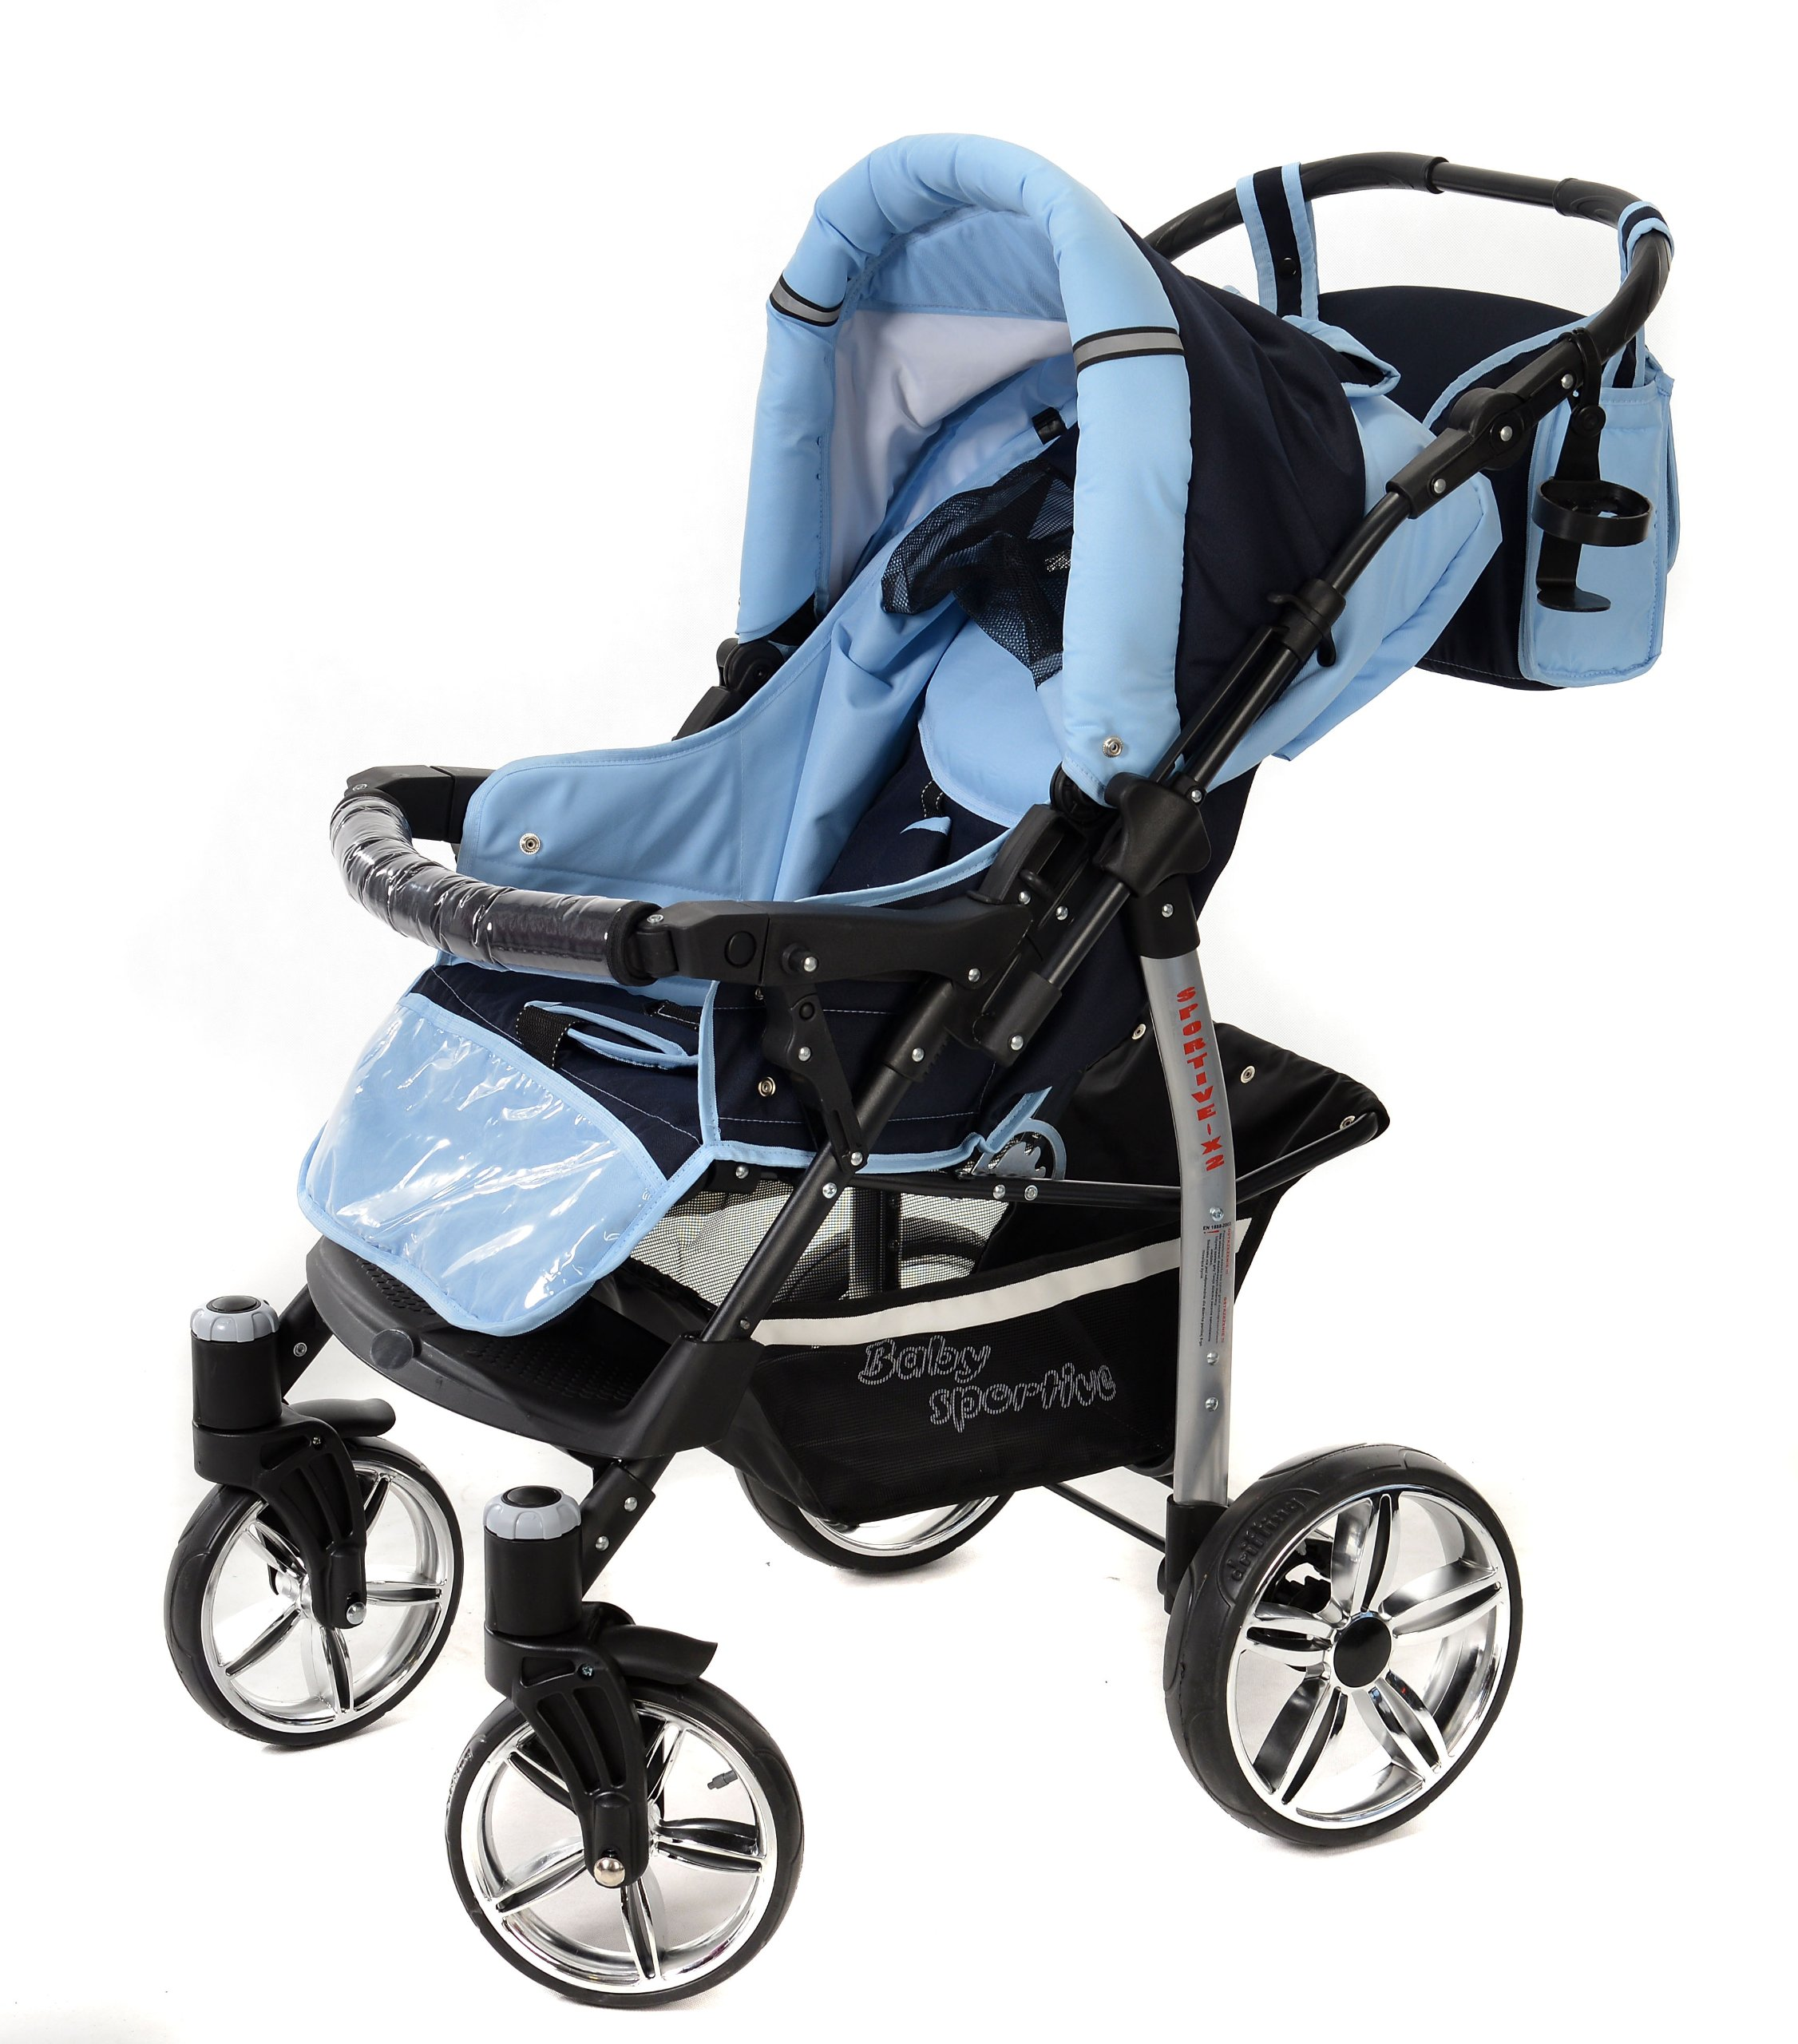 Sportive X2, 3-in-1 Travel System incl. Baby Pram with Swivel Wheels, Car Seat, Pushchair & Accessories (3-in-1 Travel System, Navy-Blue & Blue)  3 in 1 Travel System All in One Set - Pram, Car Carrier Seat and Sport Buggy + Accessories: carrier bag, rain protection, mosquito net, changing mat, removable bottle holder and removable tray for your child's bits and pieces Suitable from birth, Easy Quick Folding System; Large storage basket; Turnable handle bar that allows to face or rear the drive direction; Quick release rear wheels for easy cleaning after muddy walks Front lockable 360o swivel wheels for manoeuvrability , Small sized when folded, fits into many small car trunks, Carry-cot with a removable hood, Reflective elements for better visibility 5